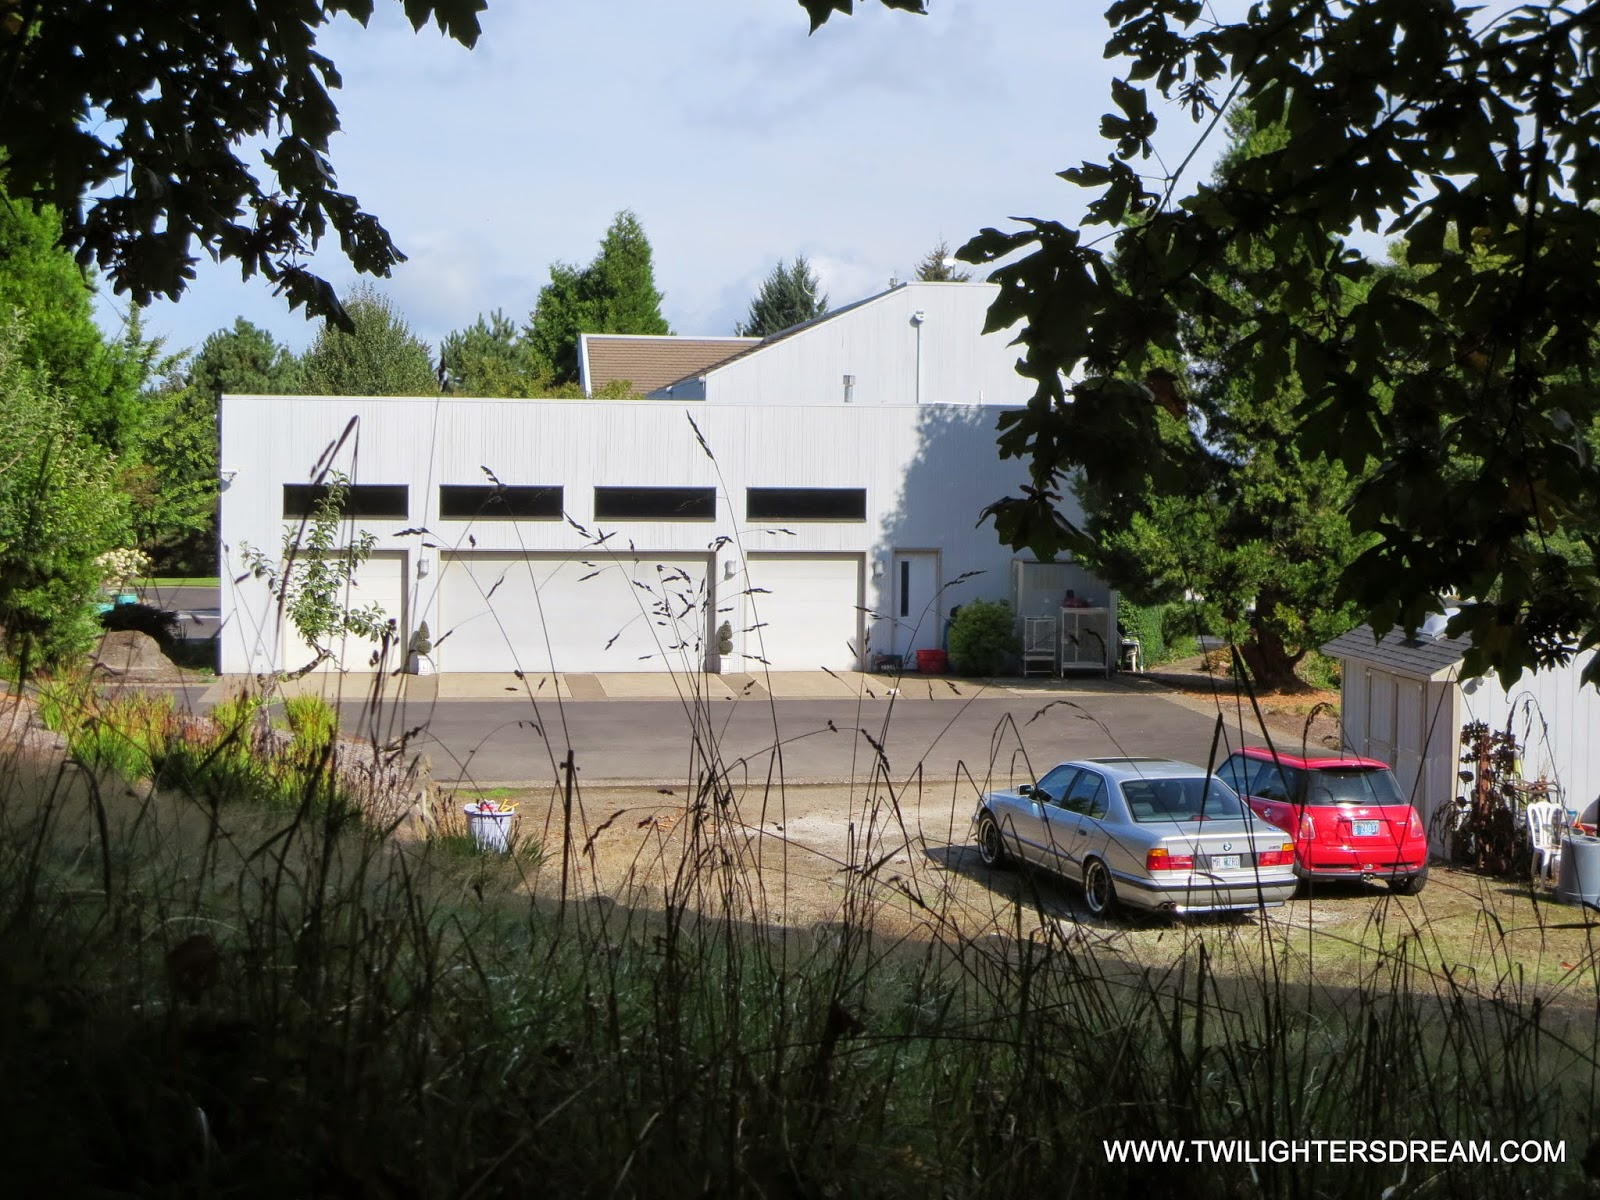 Twilighters Dream: Twilight Movie Filming Location Information